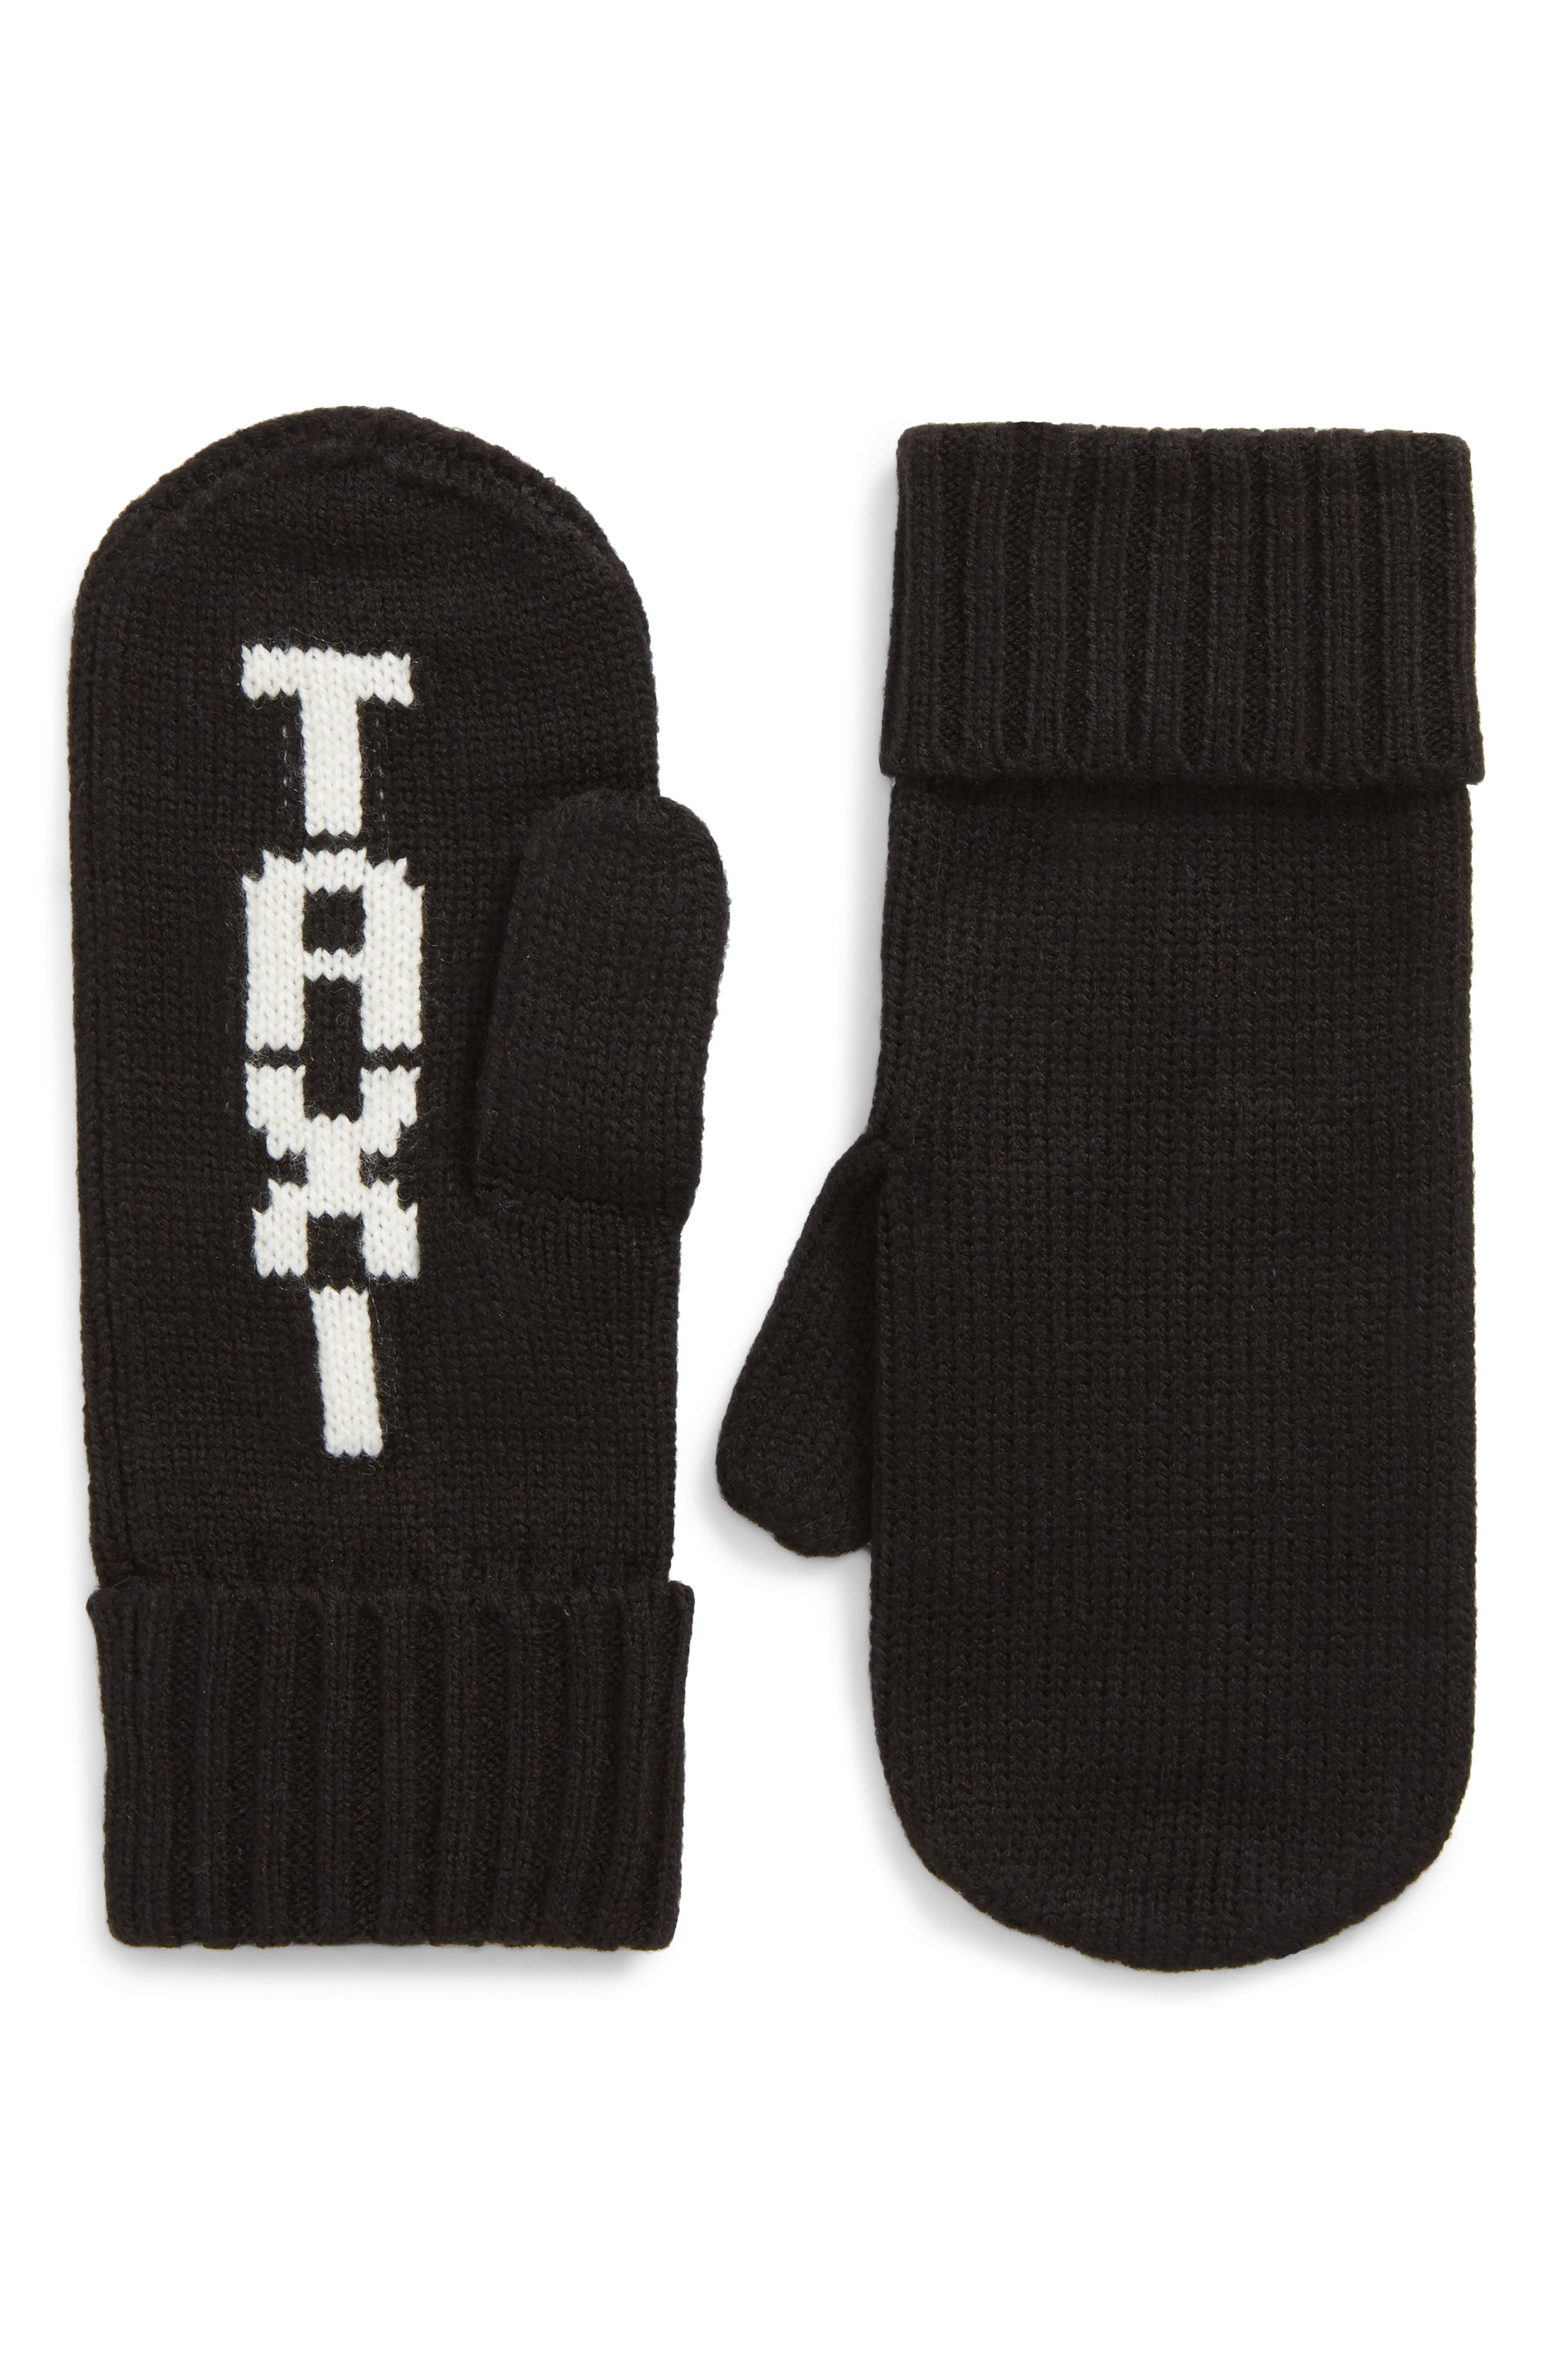 taxi mittens,                             Main thumbnail 1, color,                             001